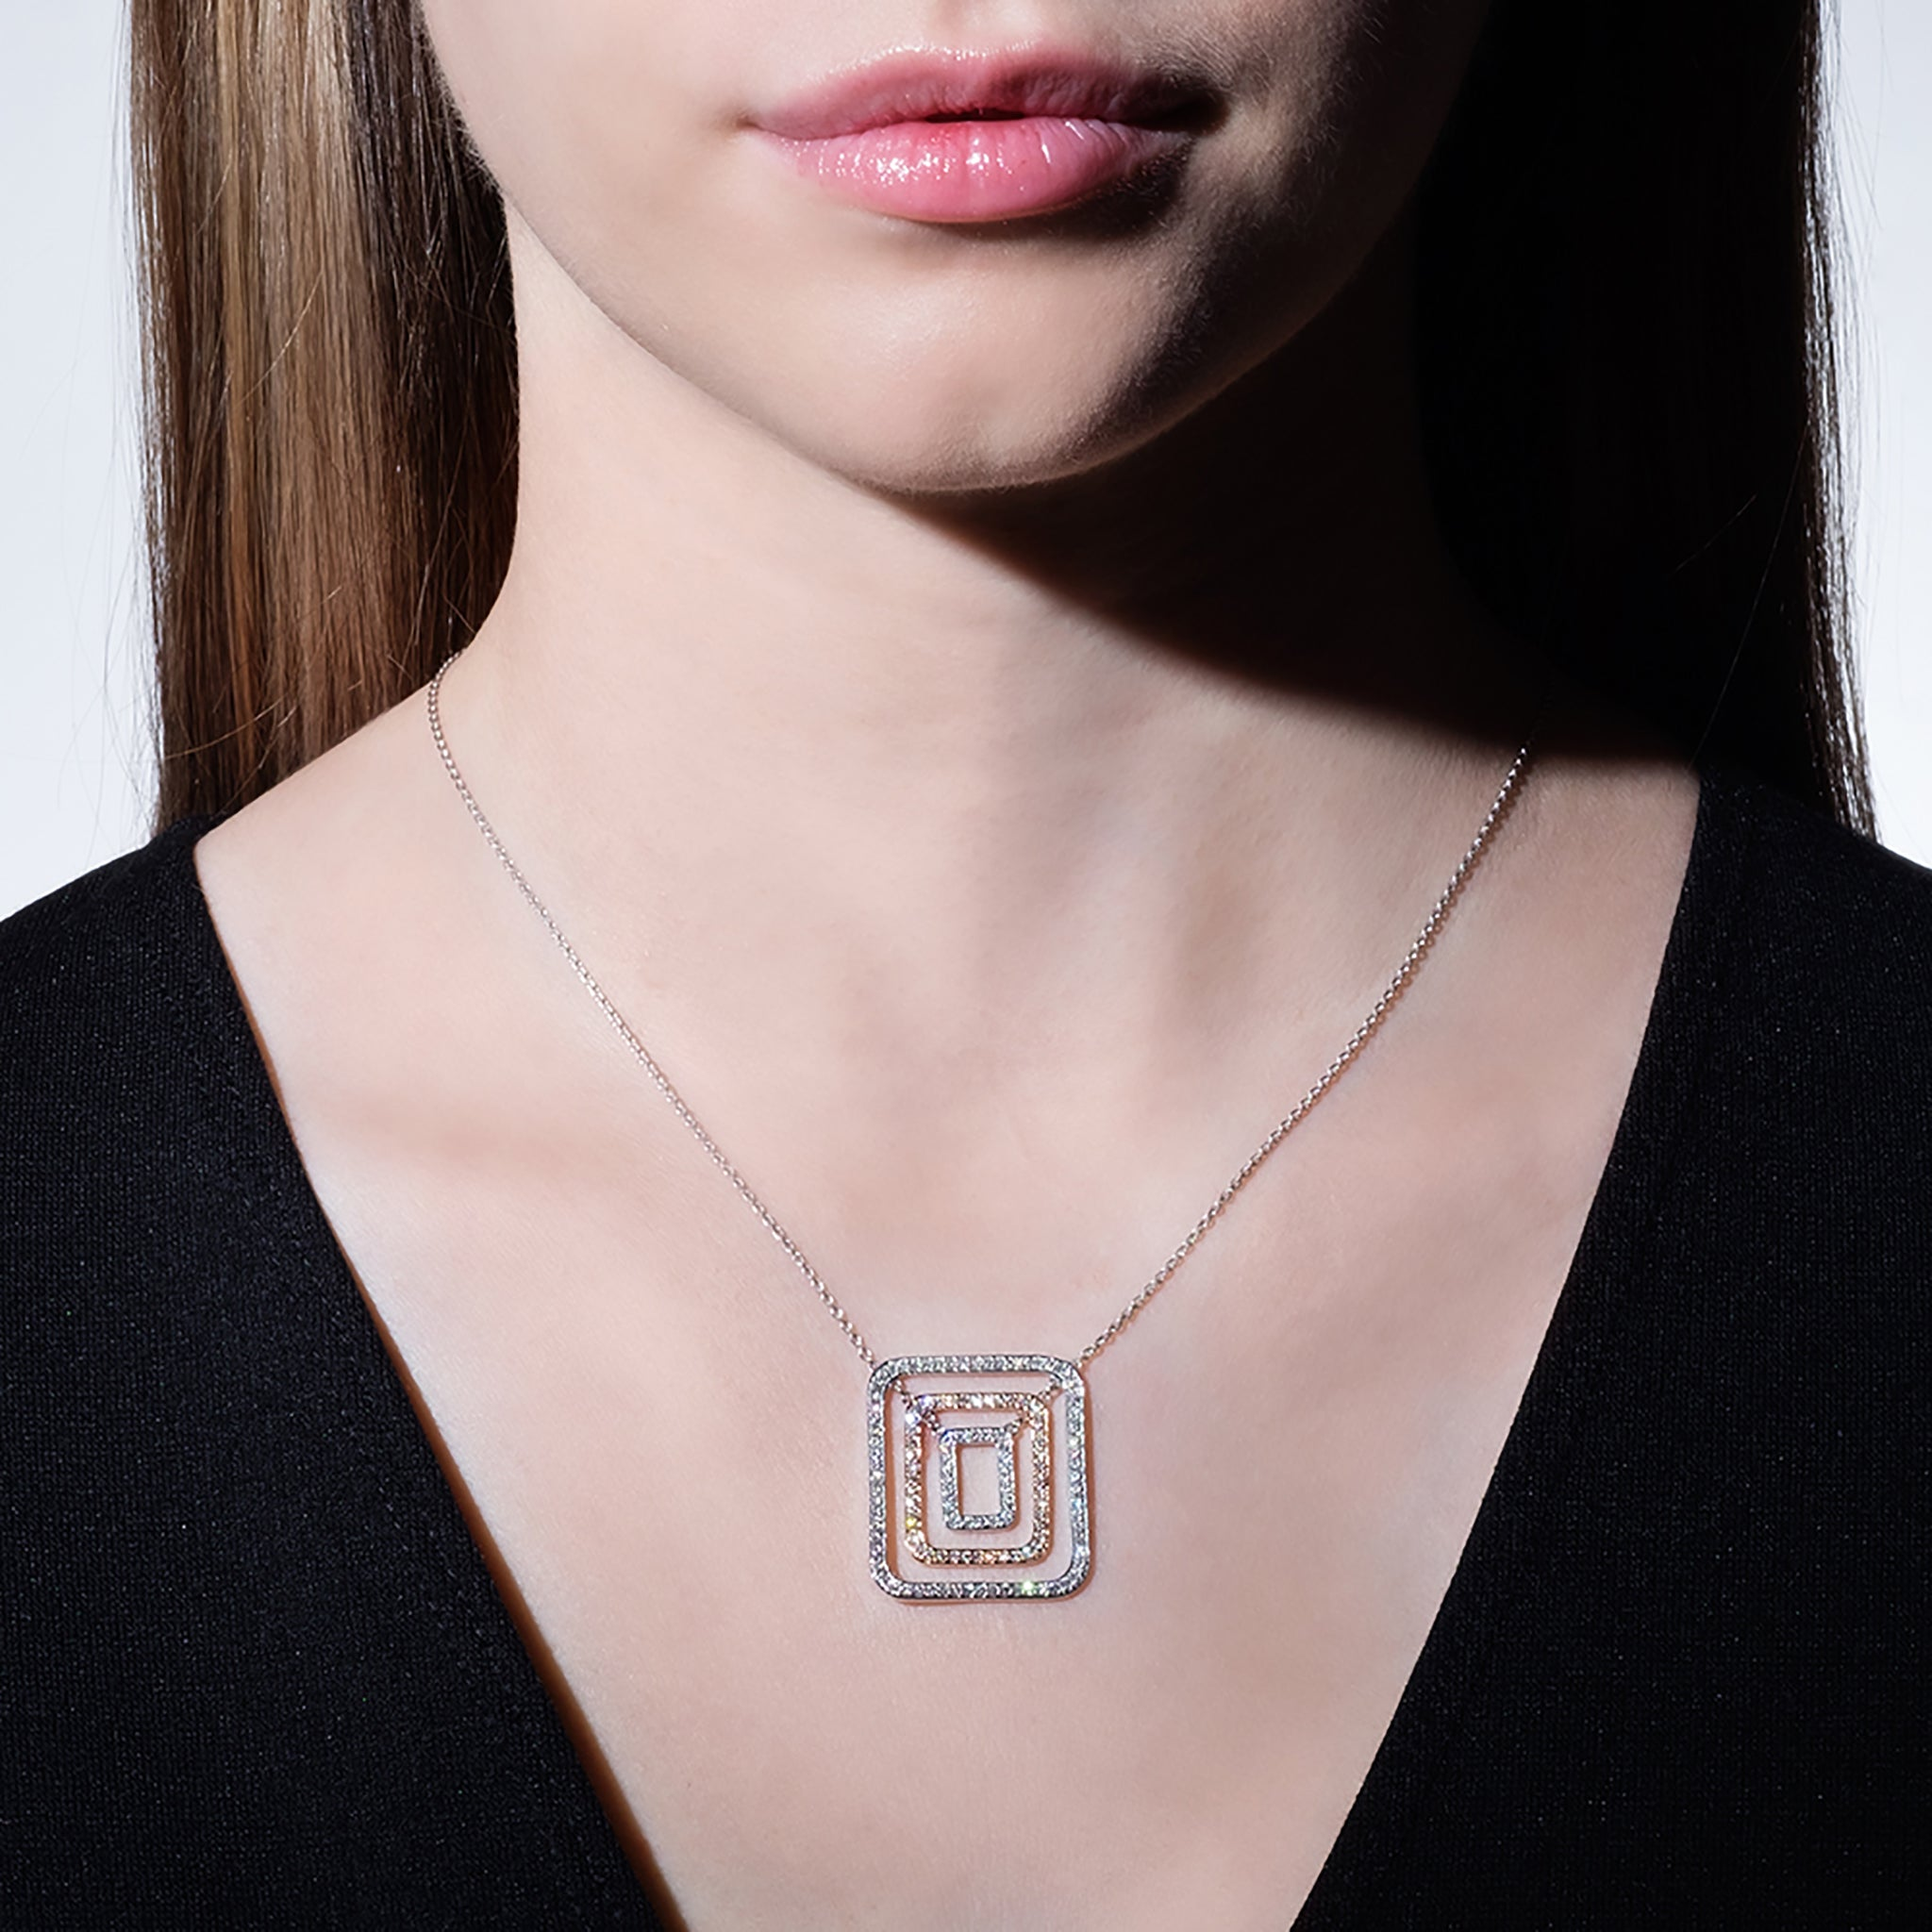 Mimi-So-Medium-Piece-Square-Swing-Necklace-18k-White-Rose-Gold